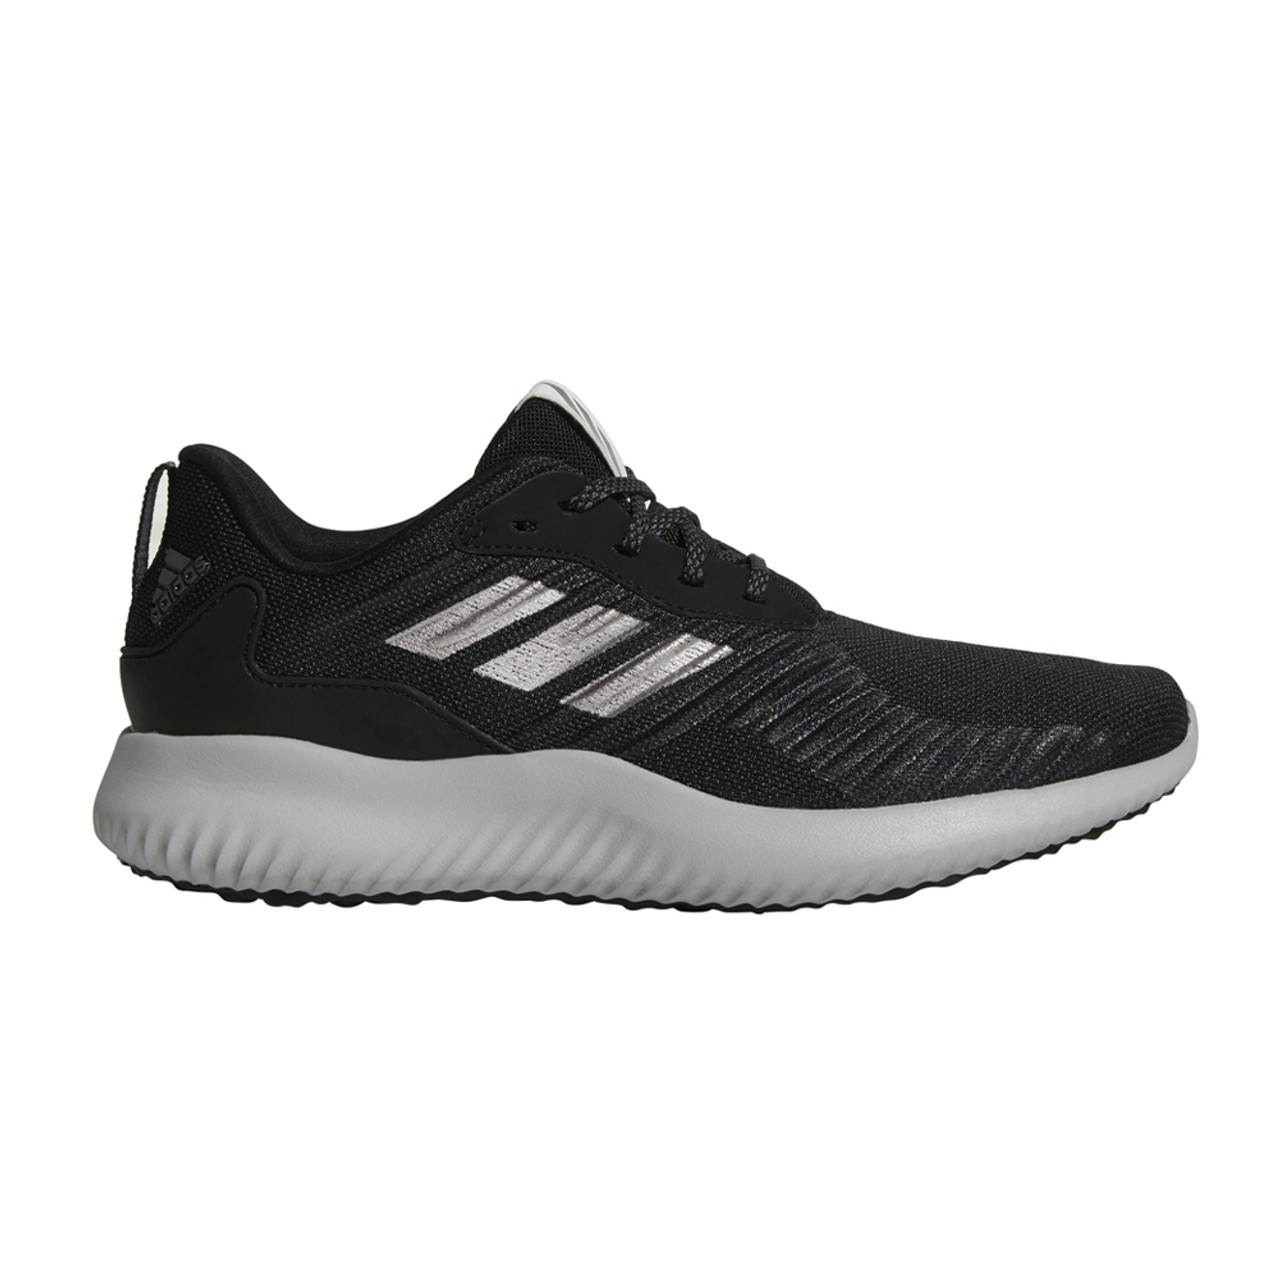 8399172c9 Adidas Men s Alphabounce Running Shoe Black Silver - Shop now   Shoolu.com